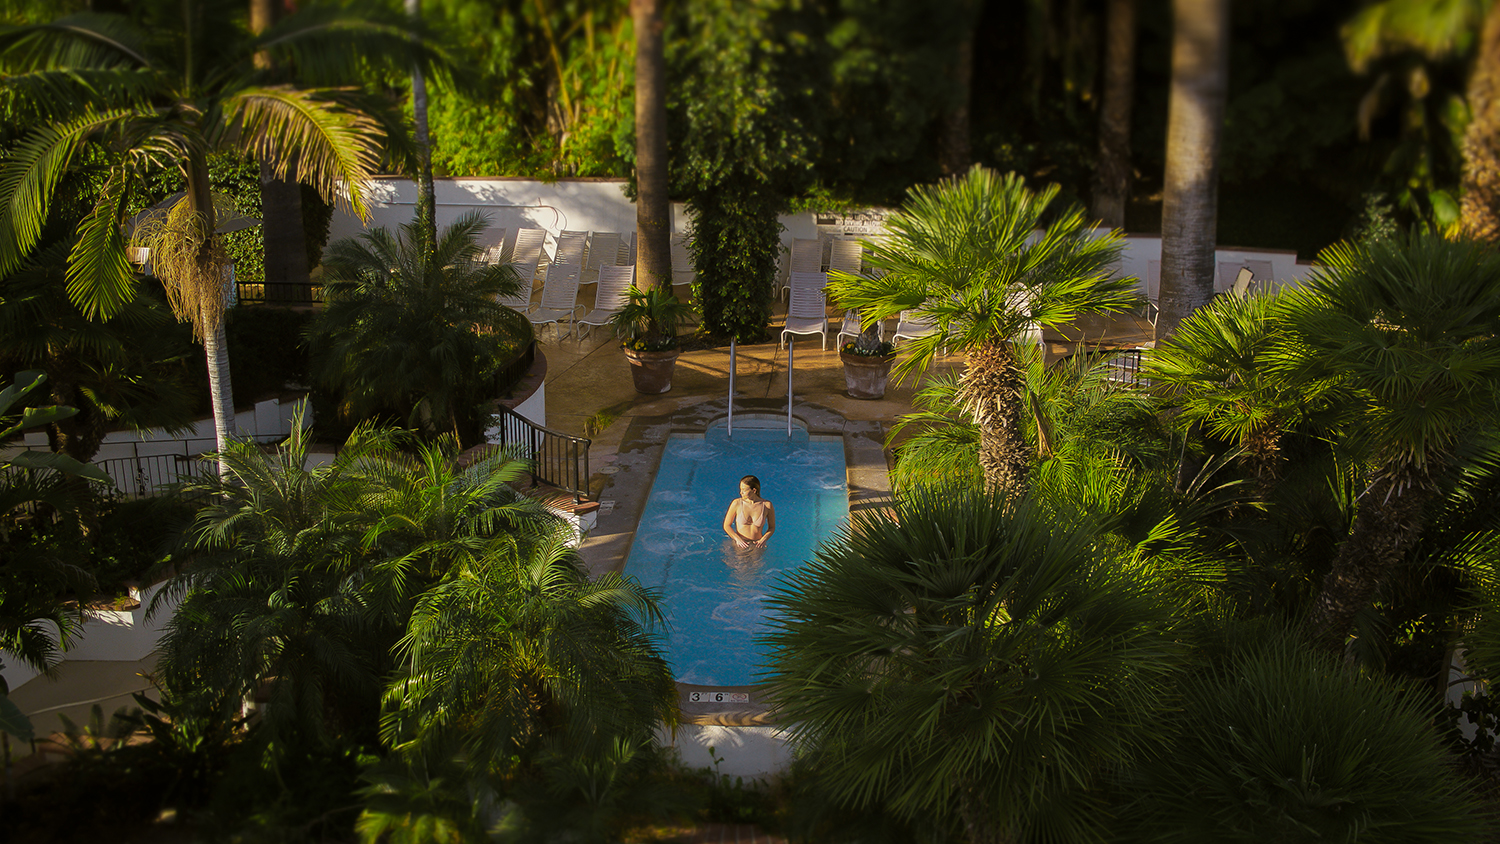 Glen Ivy Hot Springs will offer special and activities during World Wellness Weekend.